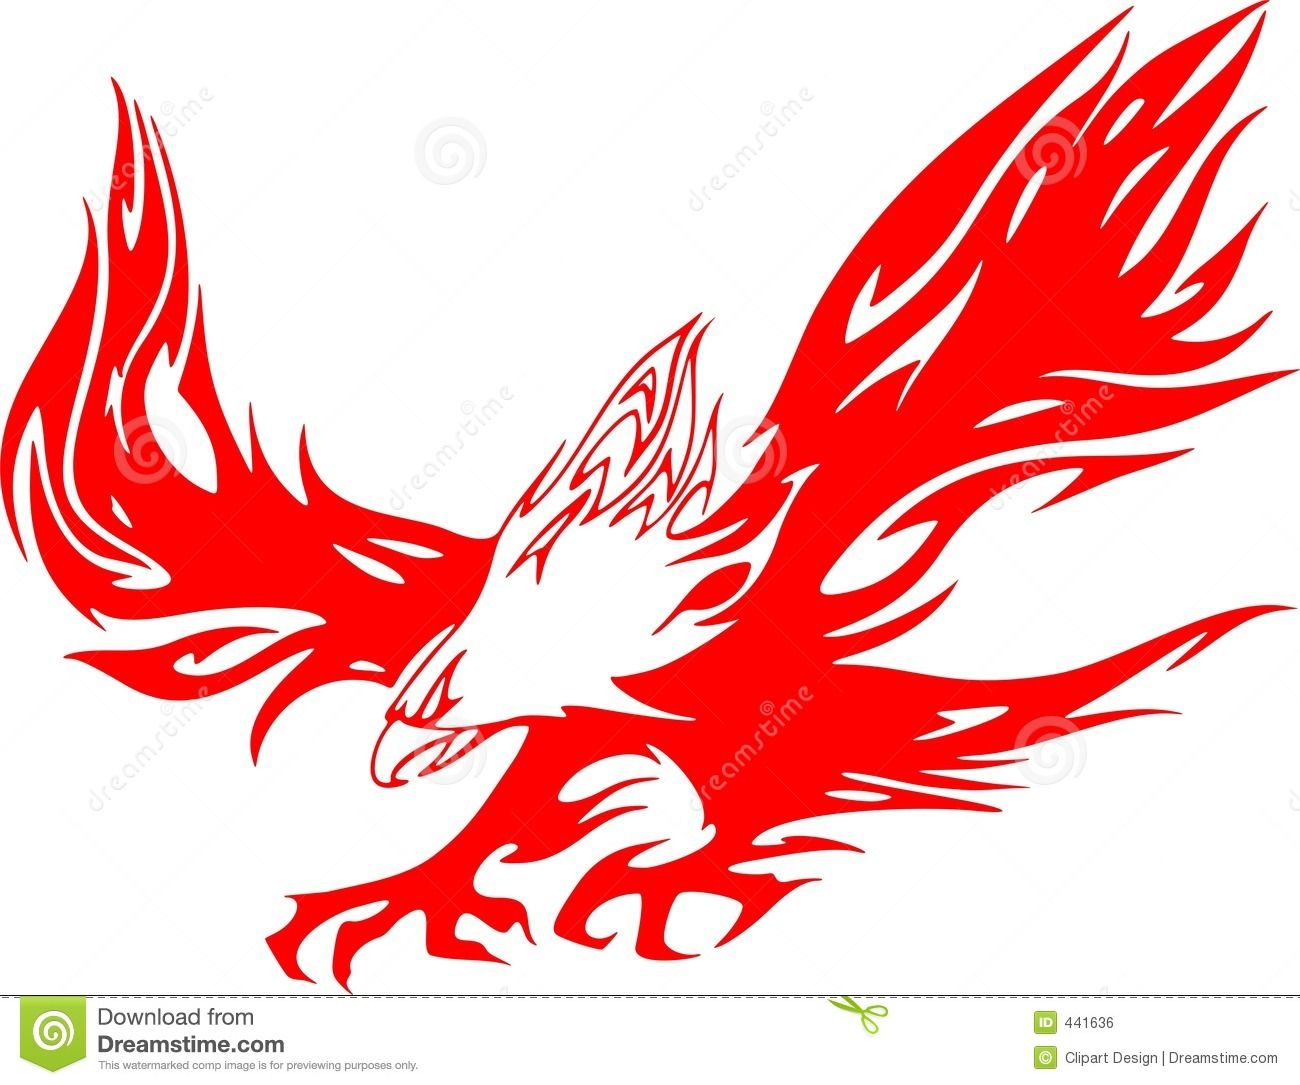 Atacking Eagle In Flames 1 Royalty Free Stock Image